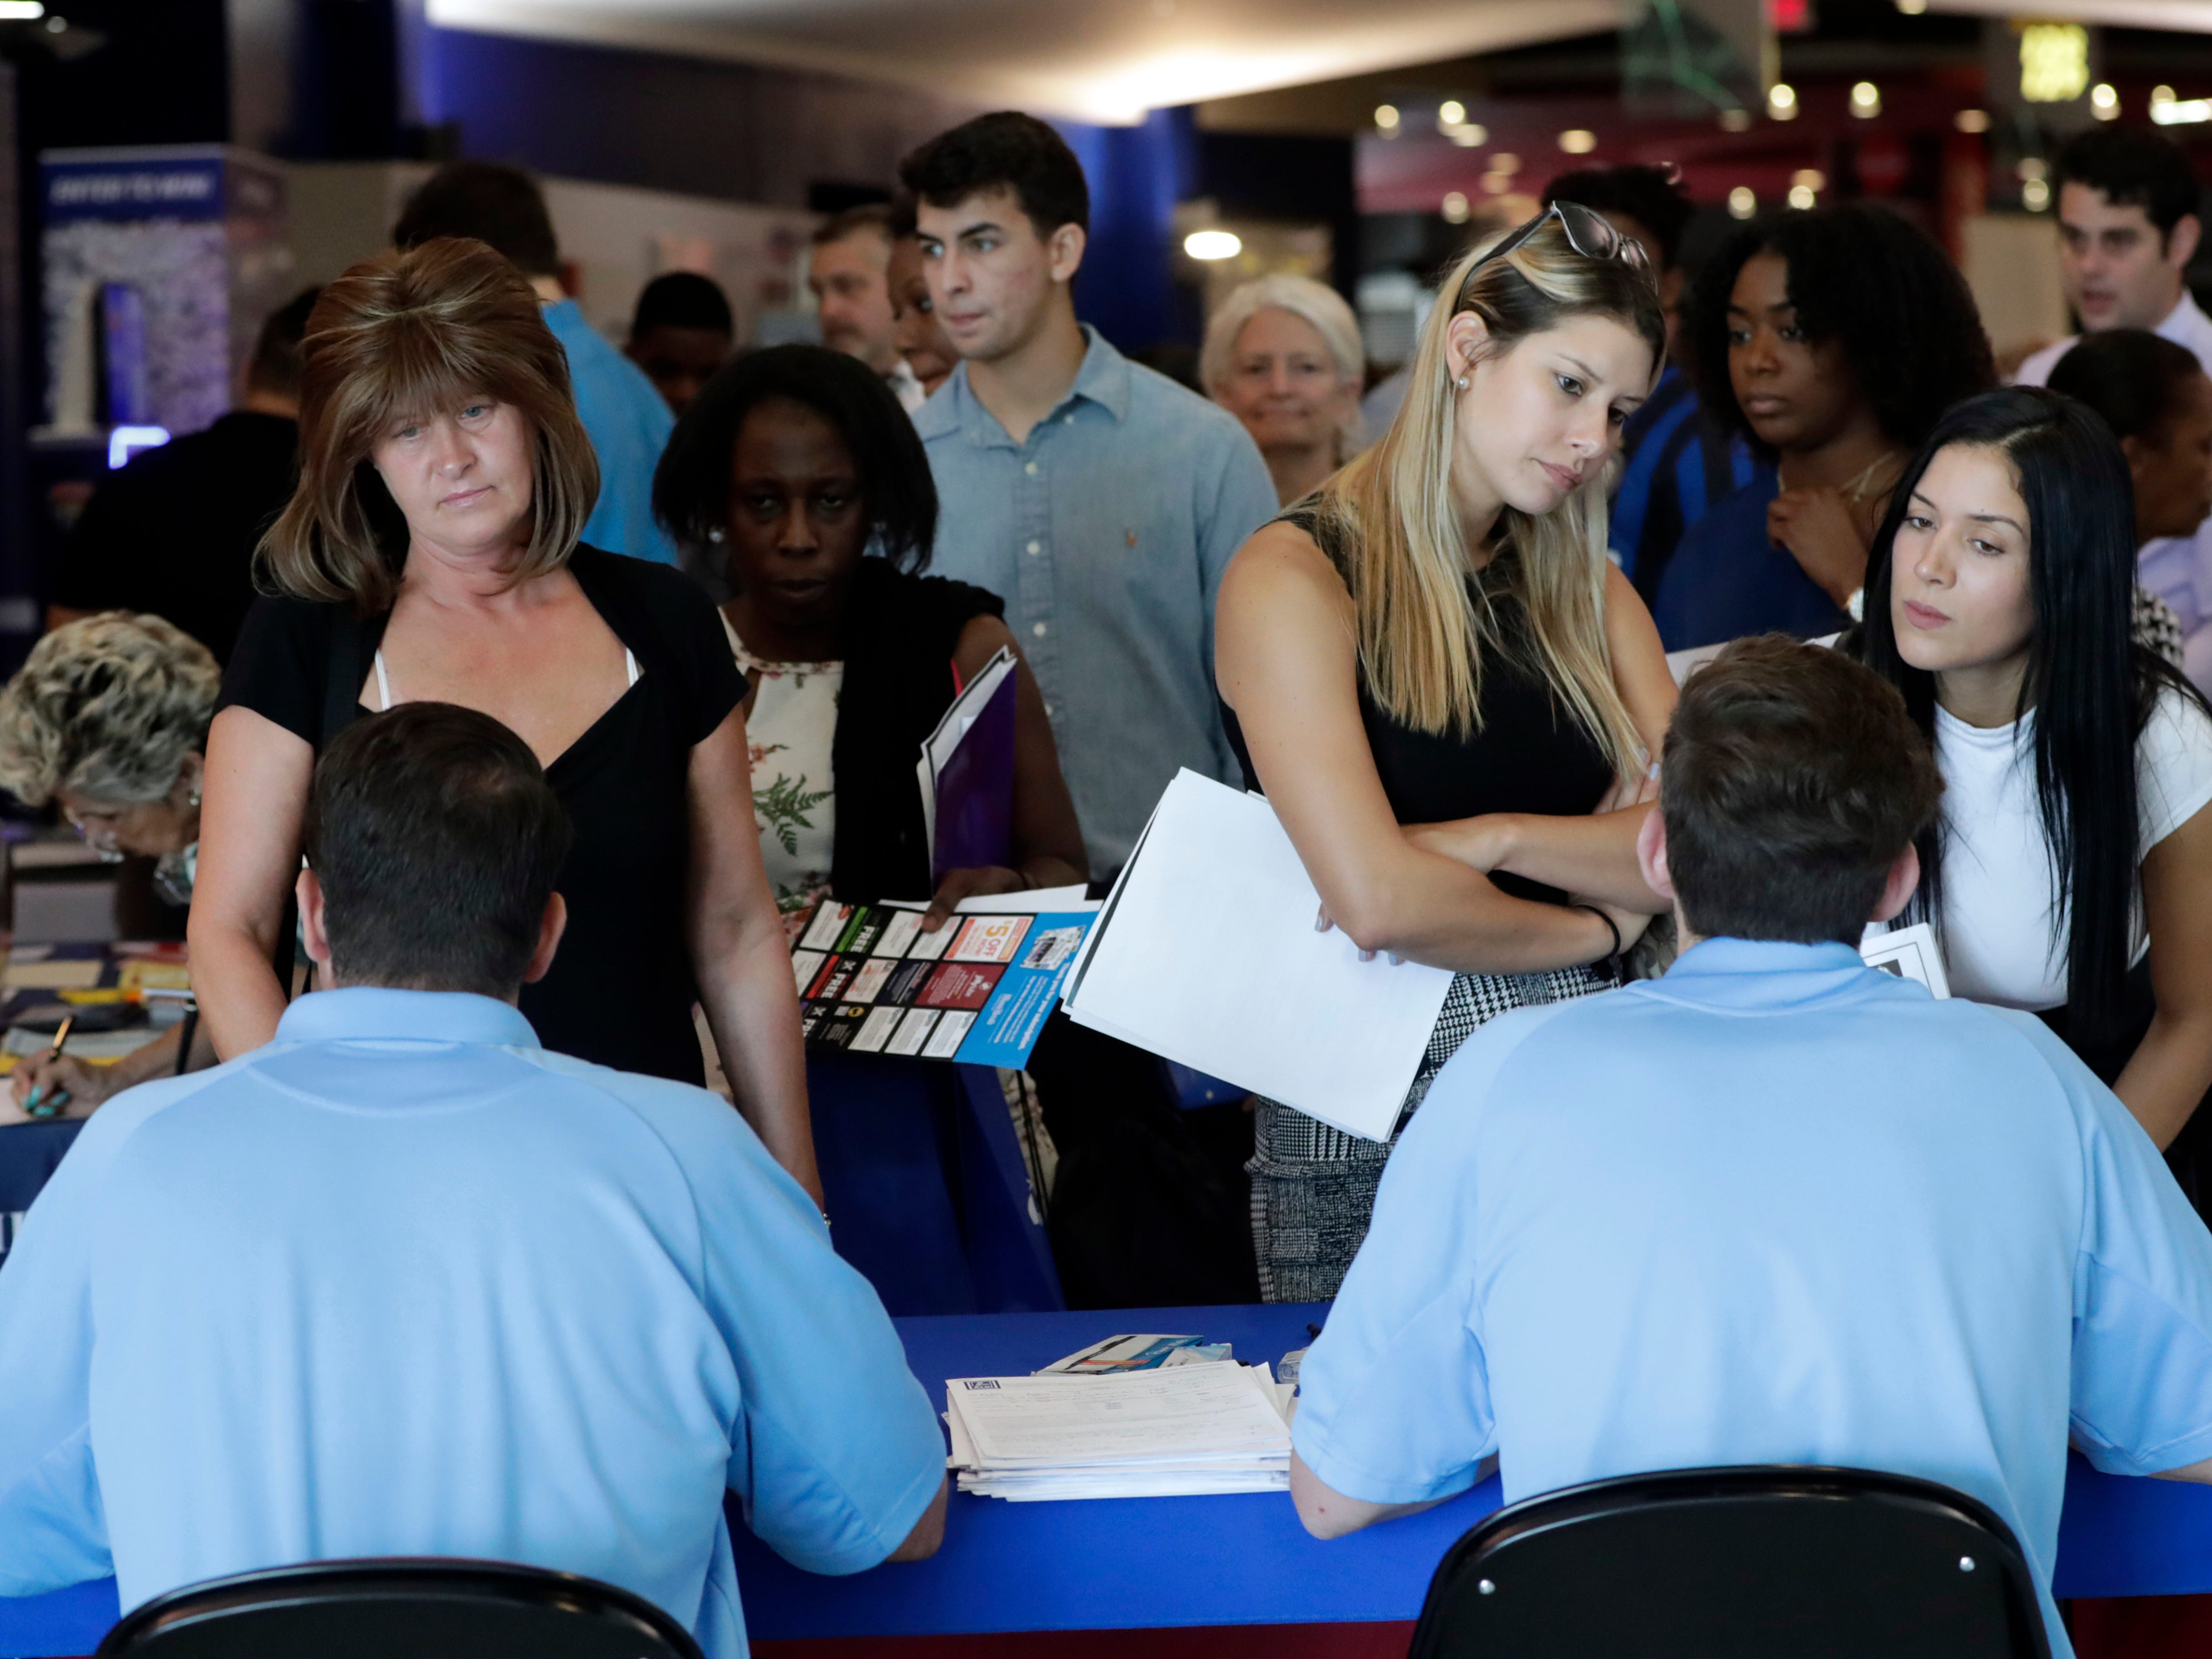 American businesses added 179,000 jobs last month, survey says